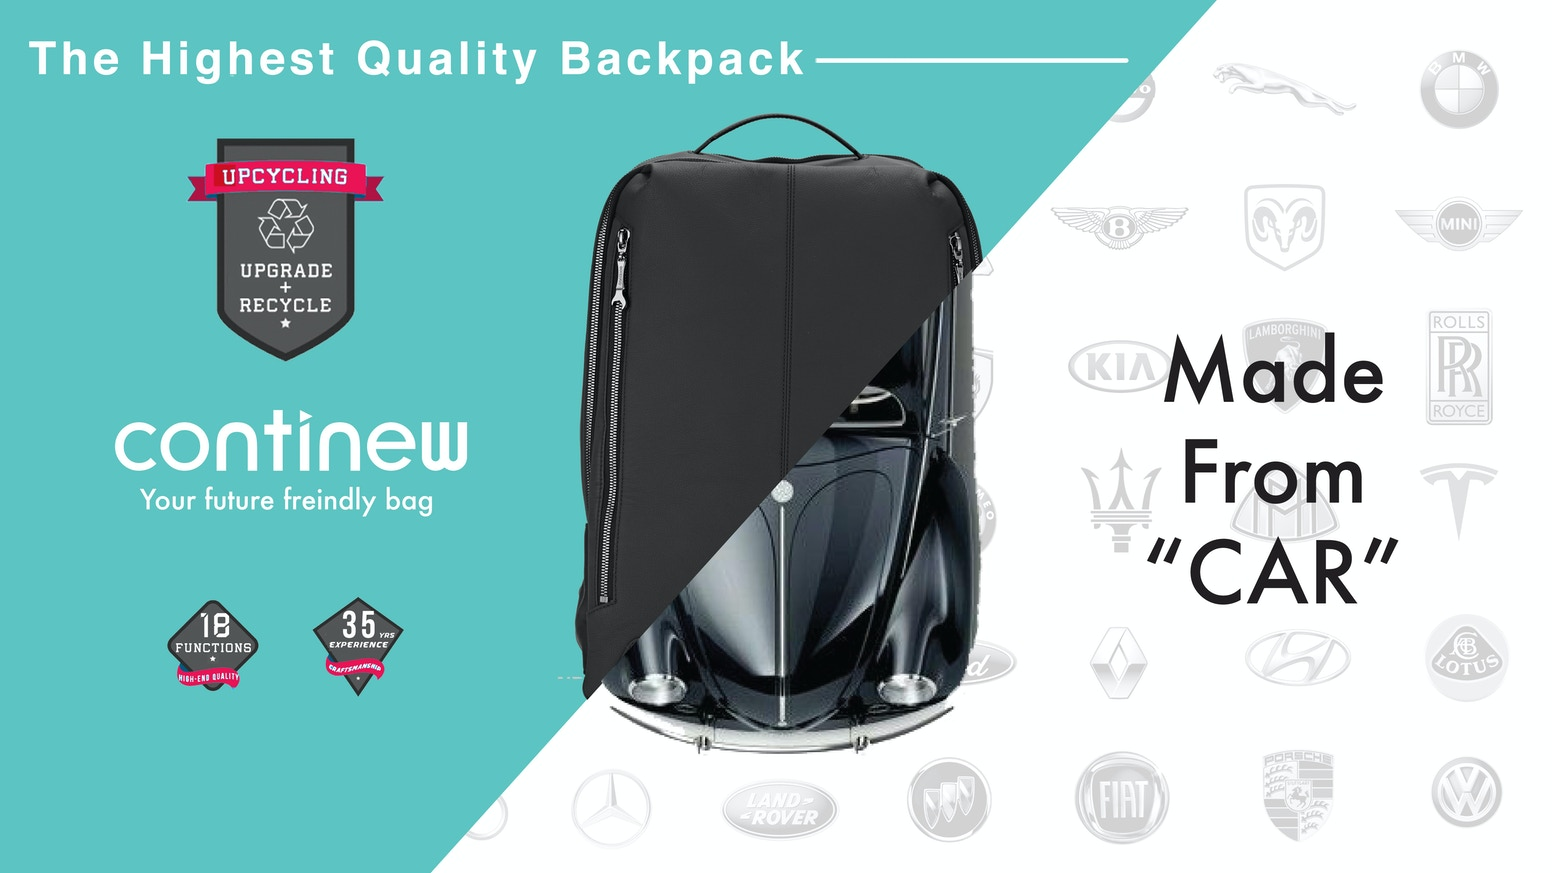 CONTINEW Backpack The High Quality Bag Made From Cars